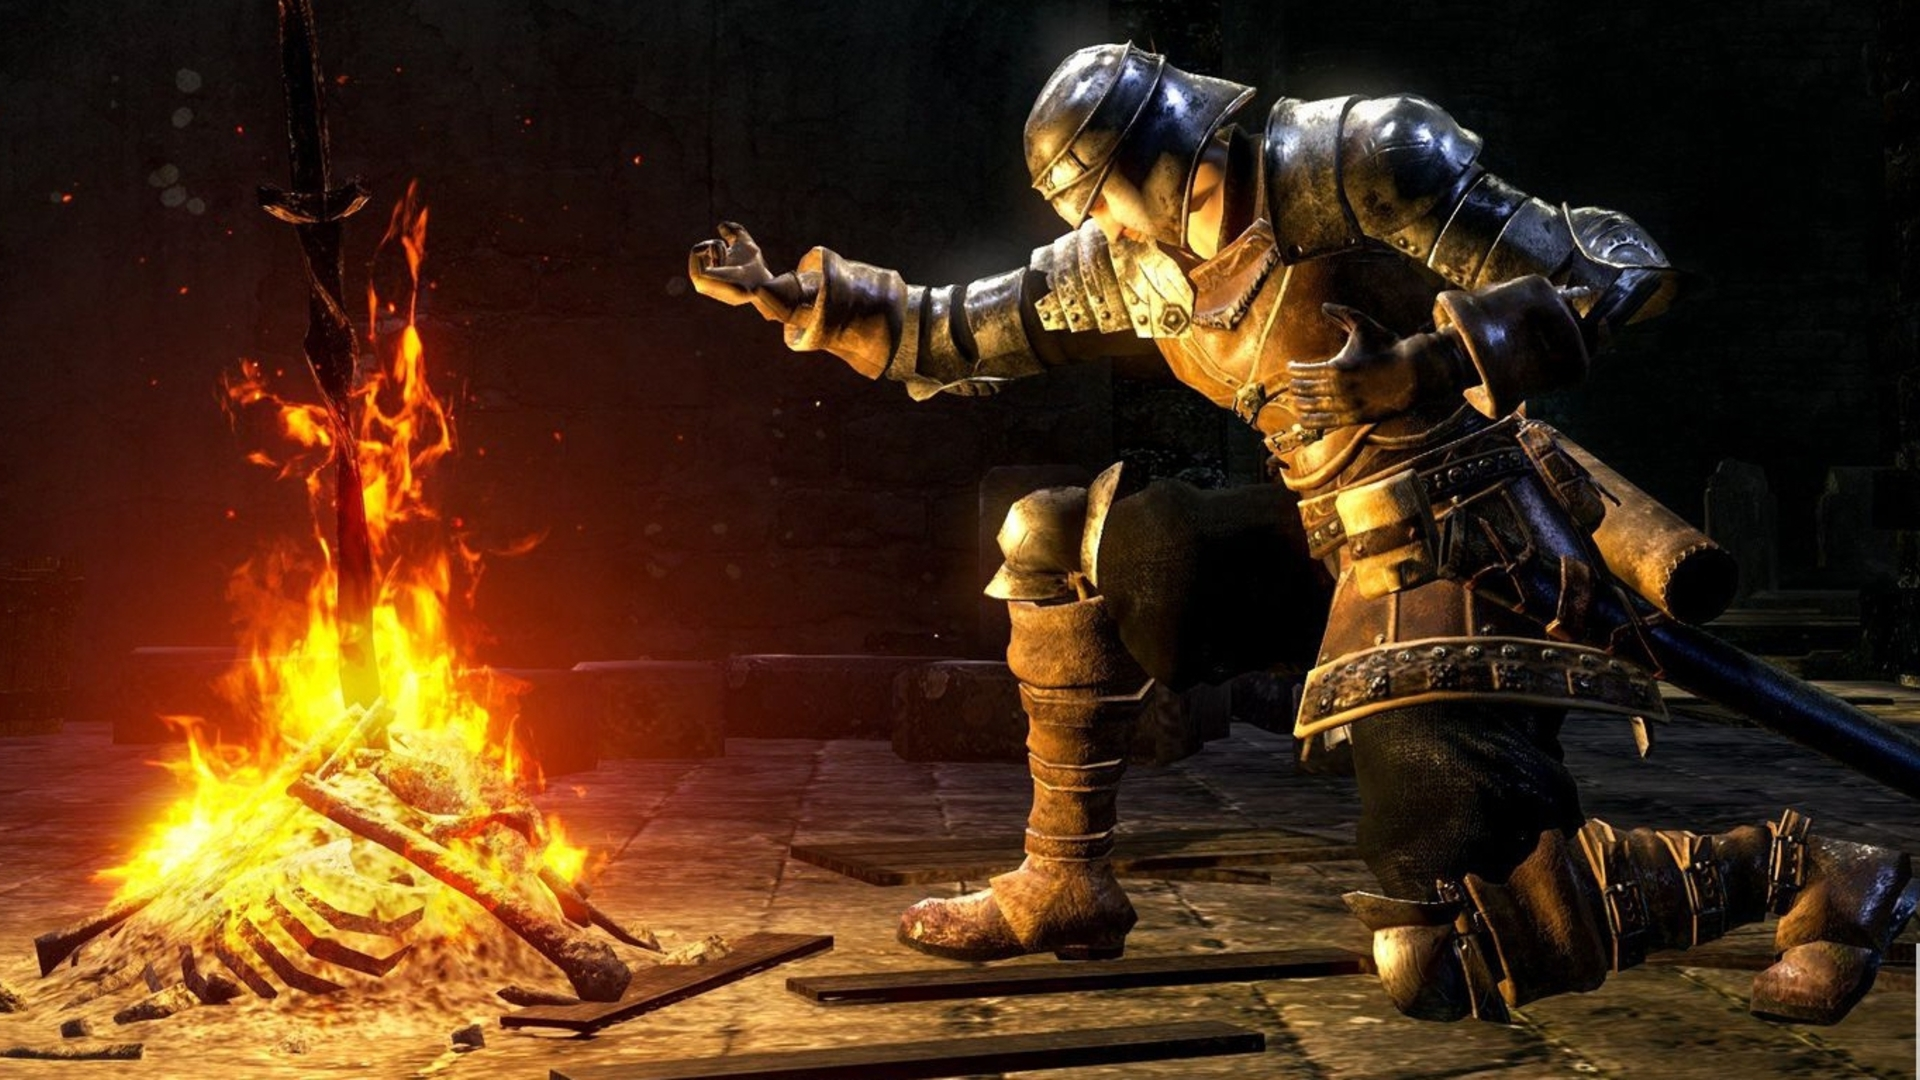 dark souls walkthrough guide and tips for the ps4 xbox one pc and rh eurogamer net fable 2 xbox 360 walkthrough guide xbox 360 kung fu panda walkthrough guide